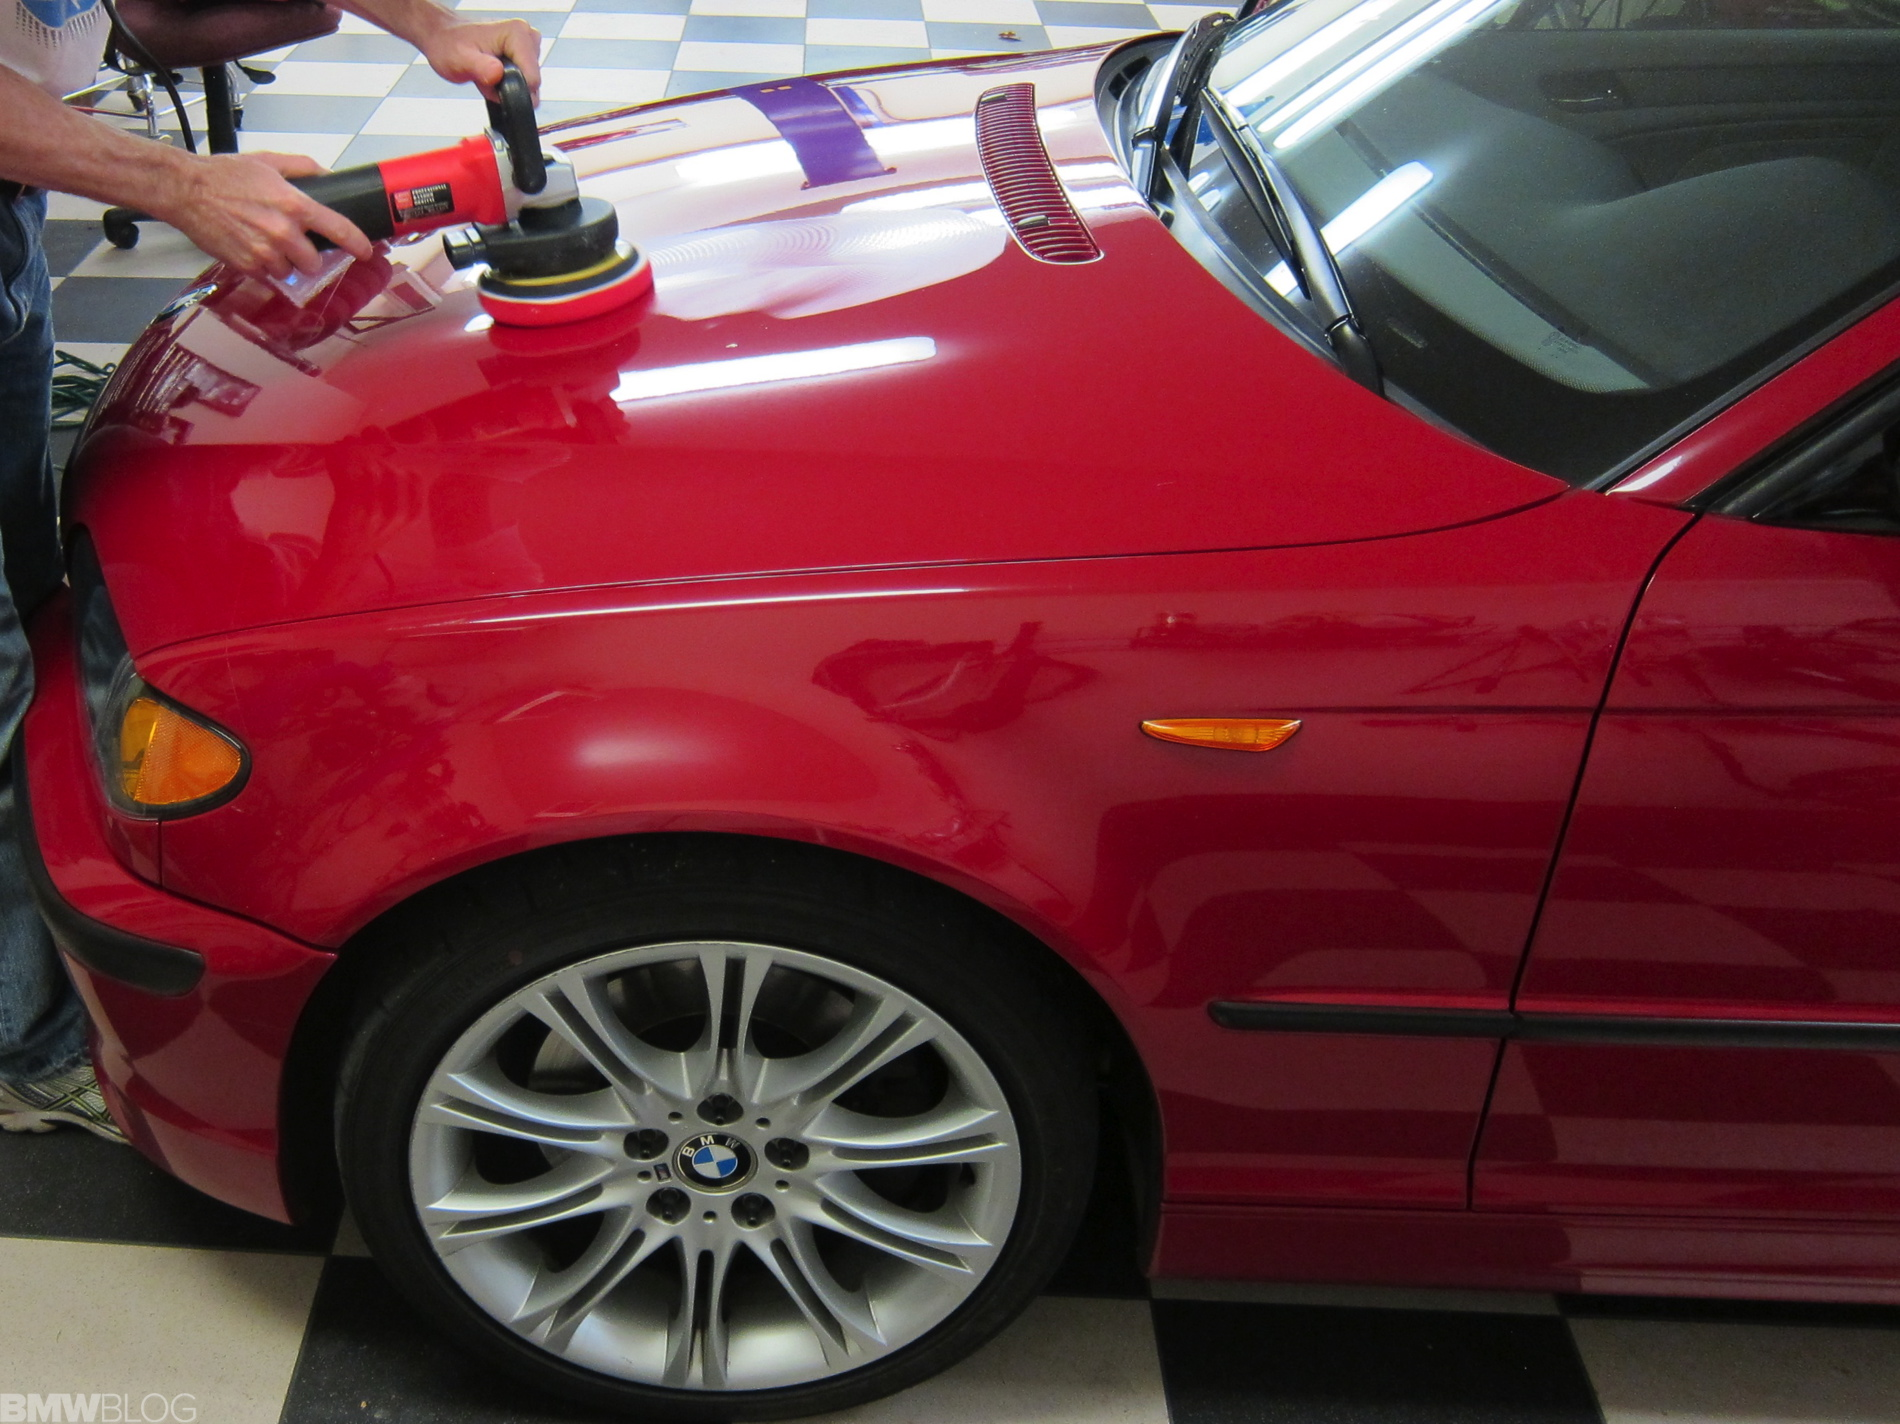 Best Polish And Wax For Red Cars